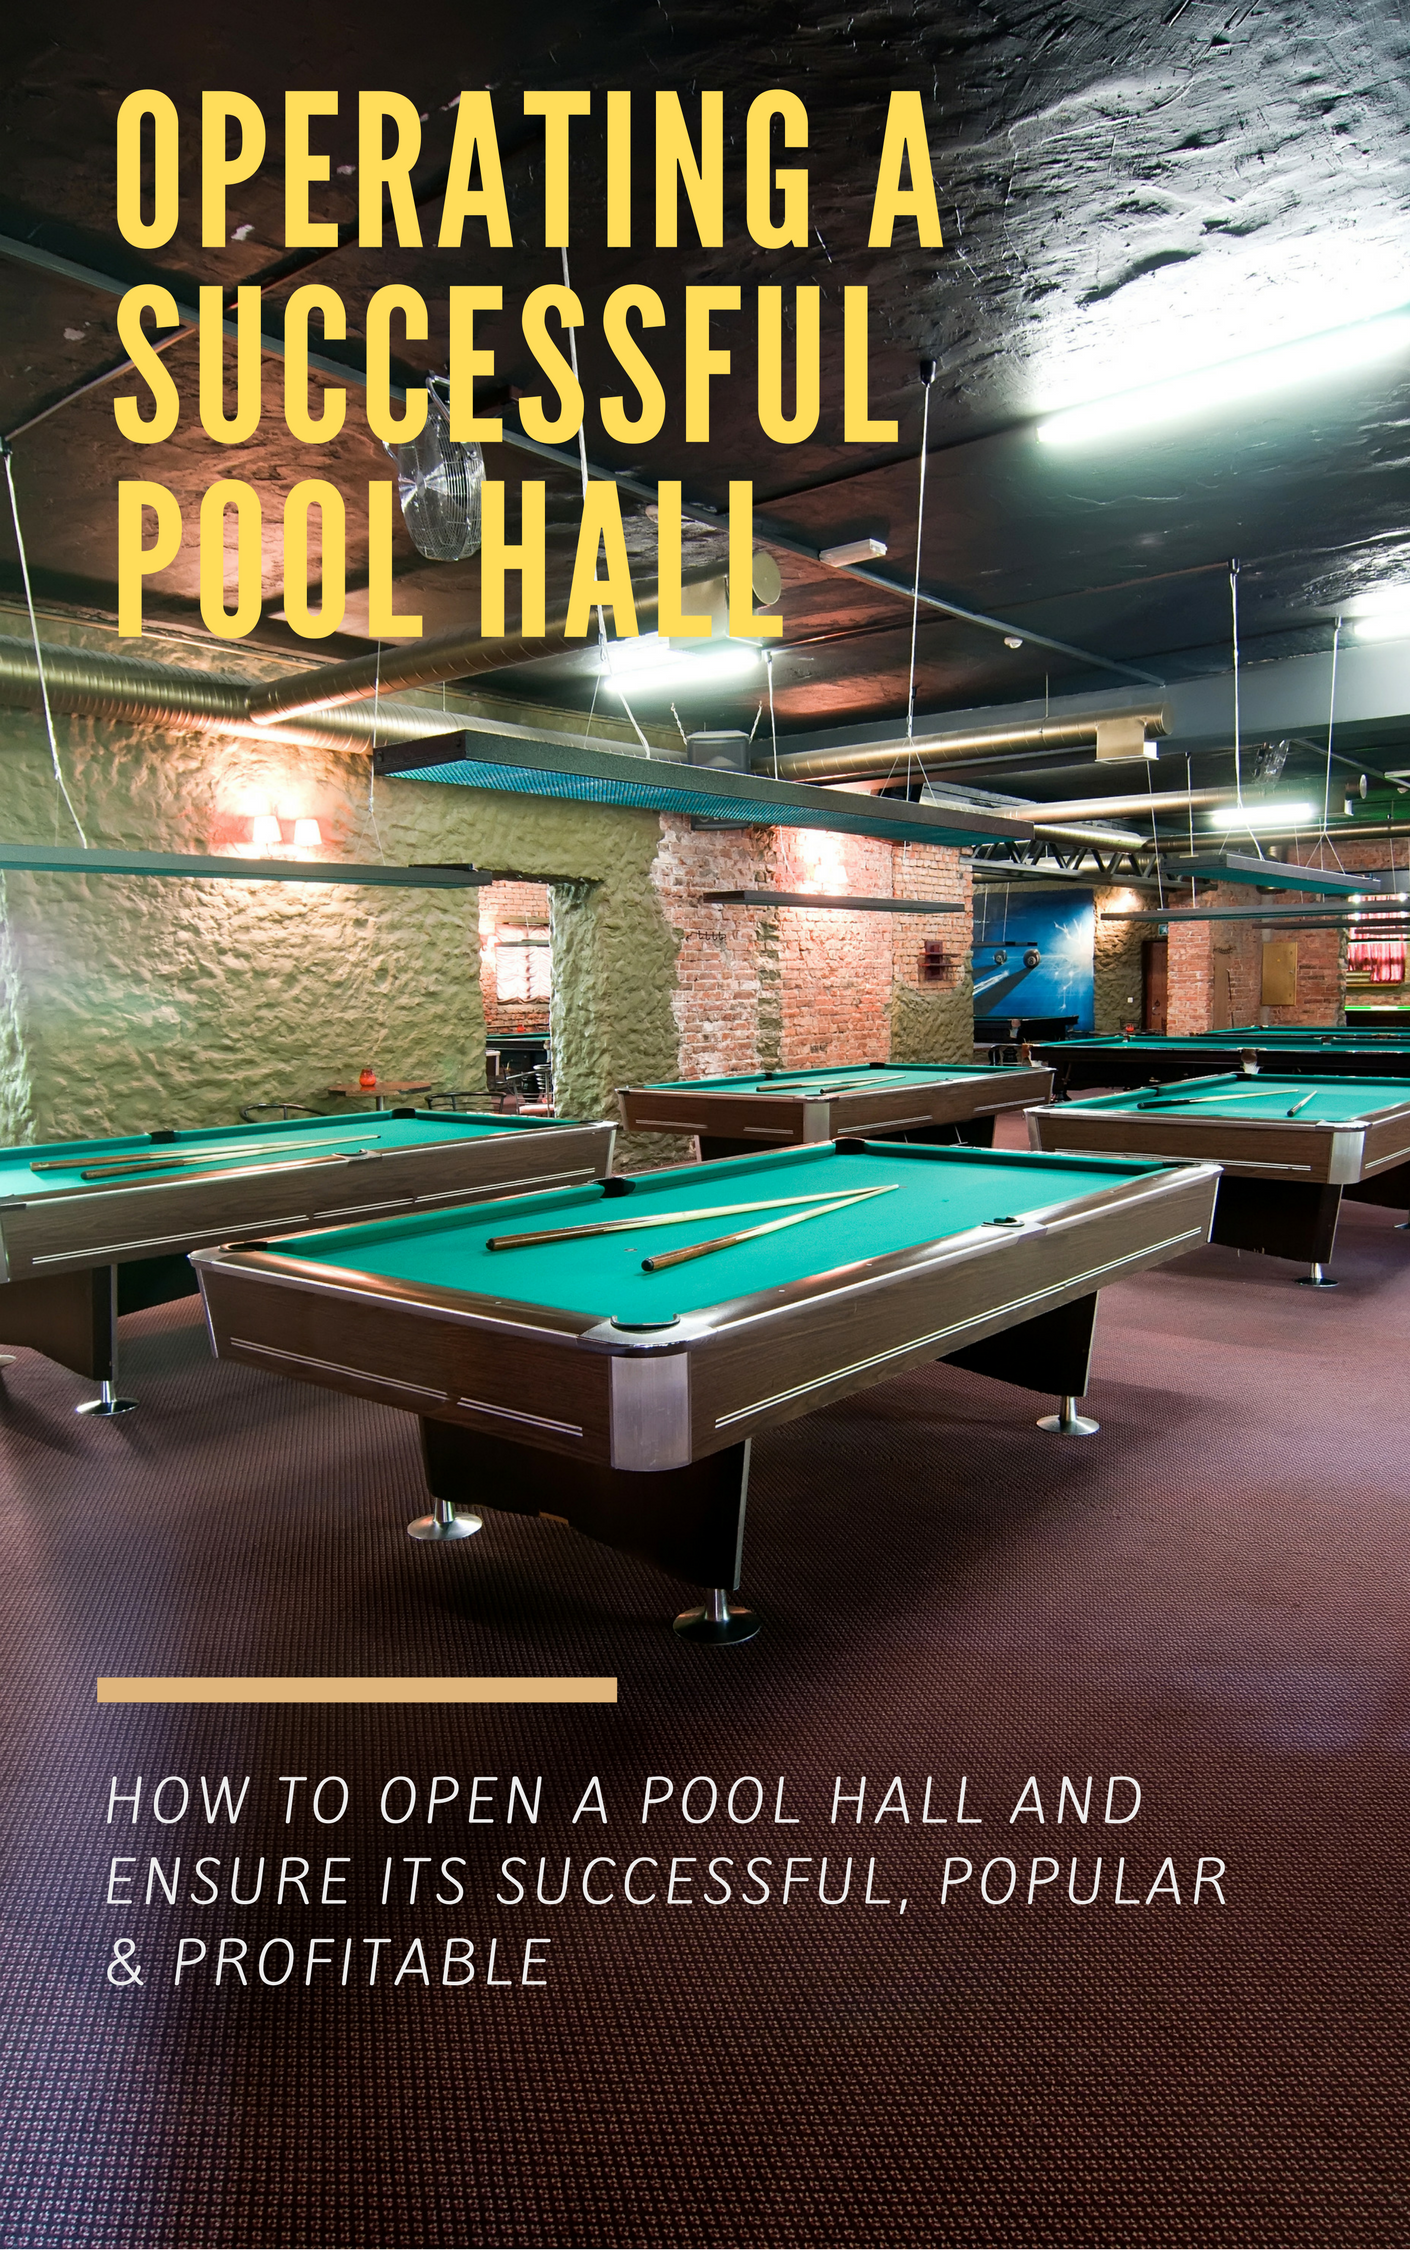 This book will save you thousands! - Learn how to properly run your pool hall and position yourself for success. $79.95                    CLICK HERE to preview